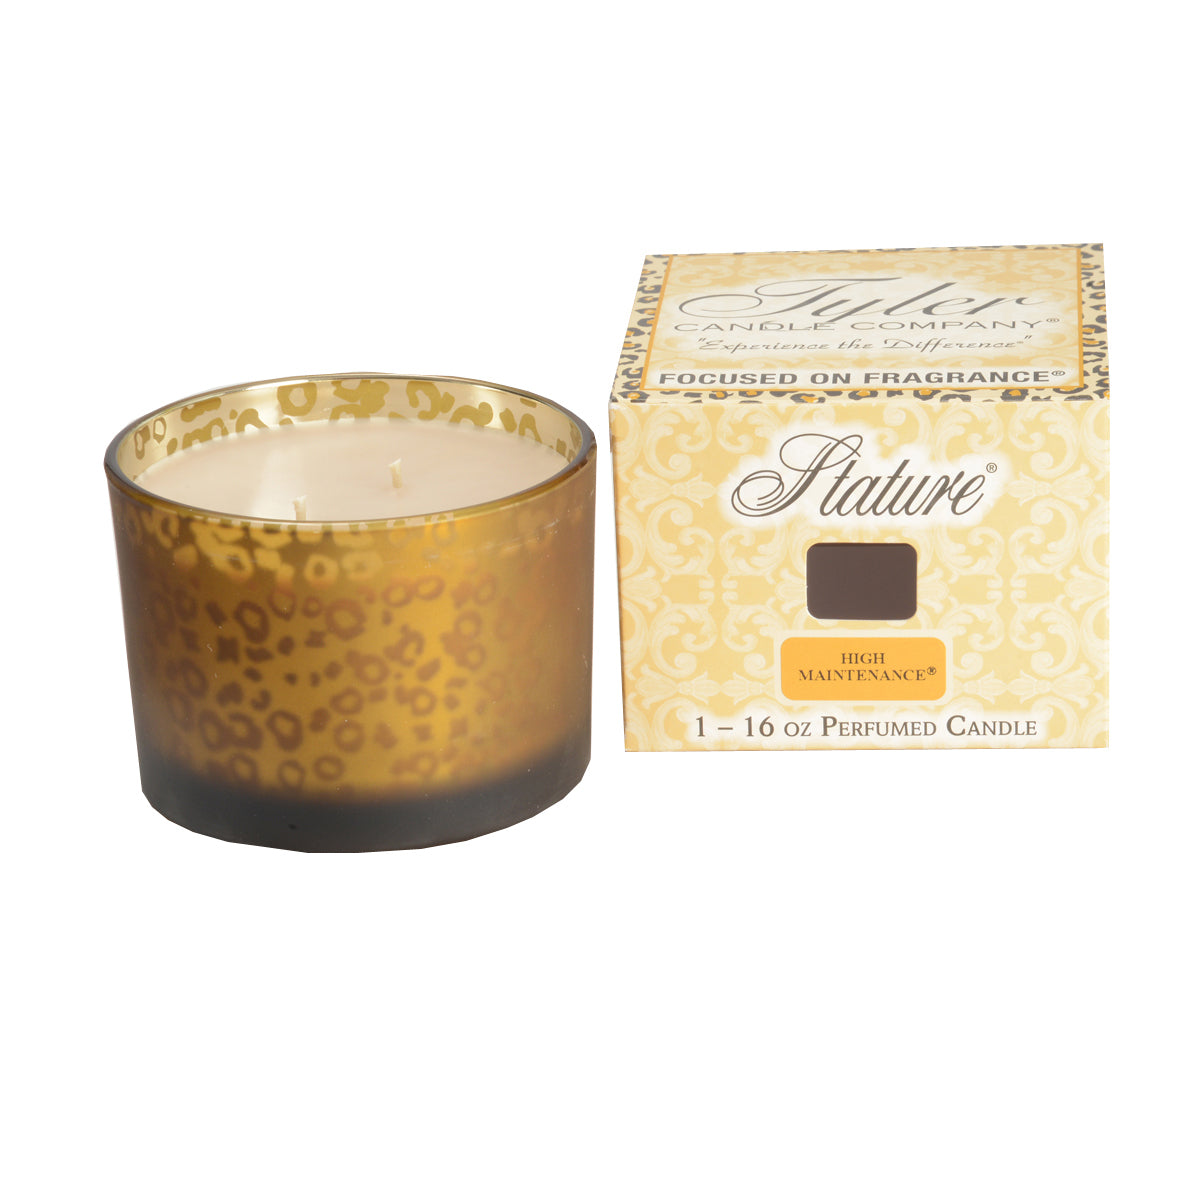 Tyler Candle Company Stature Collection Candle - 16 oz Muted Gold Leopard